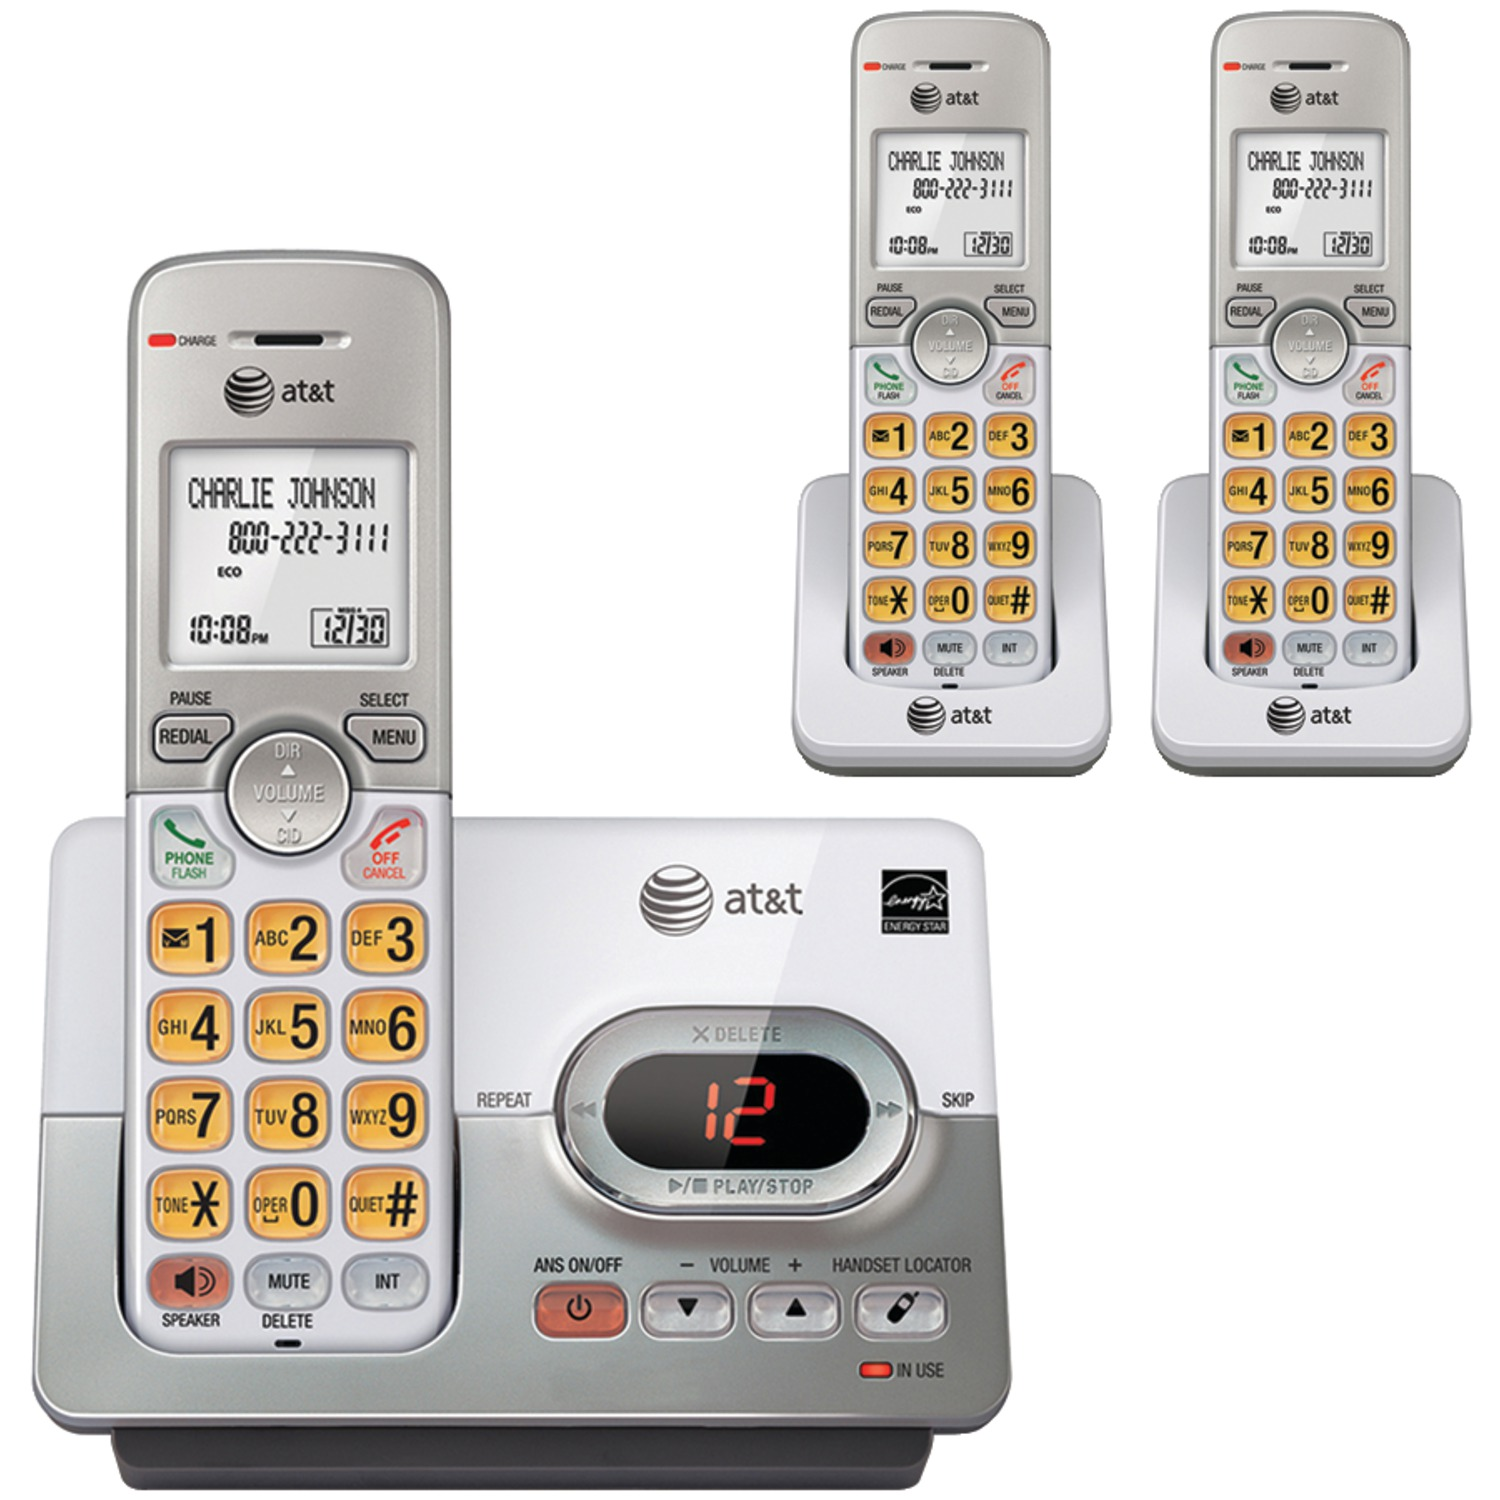 AT EL52303 3-Handset Answering System With Caller ID & Call Waiting